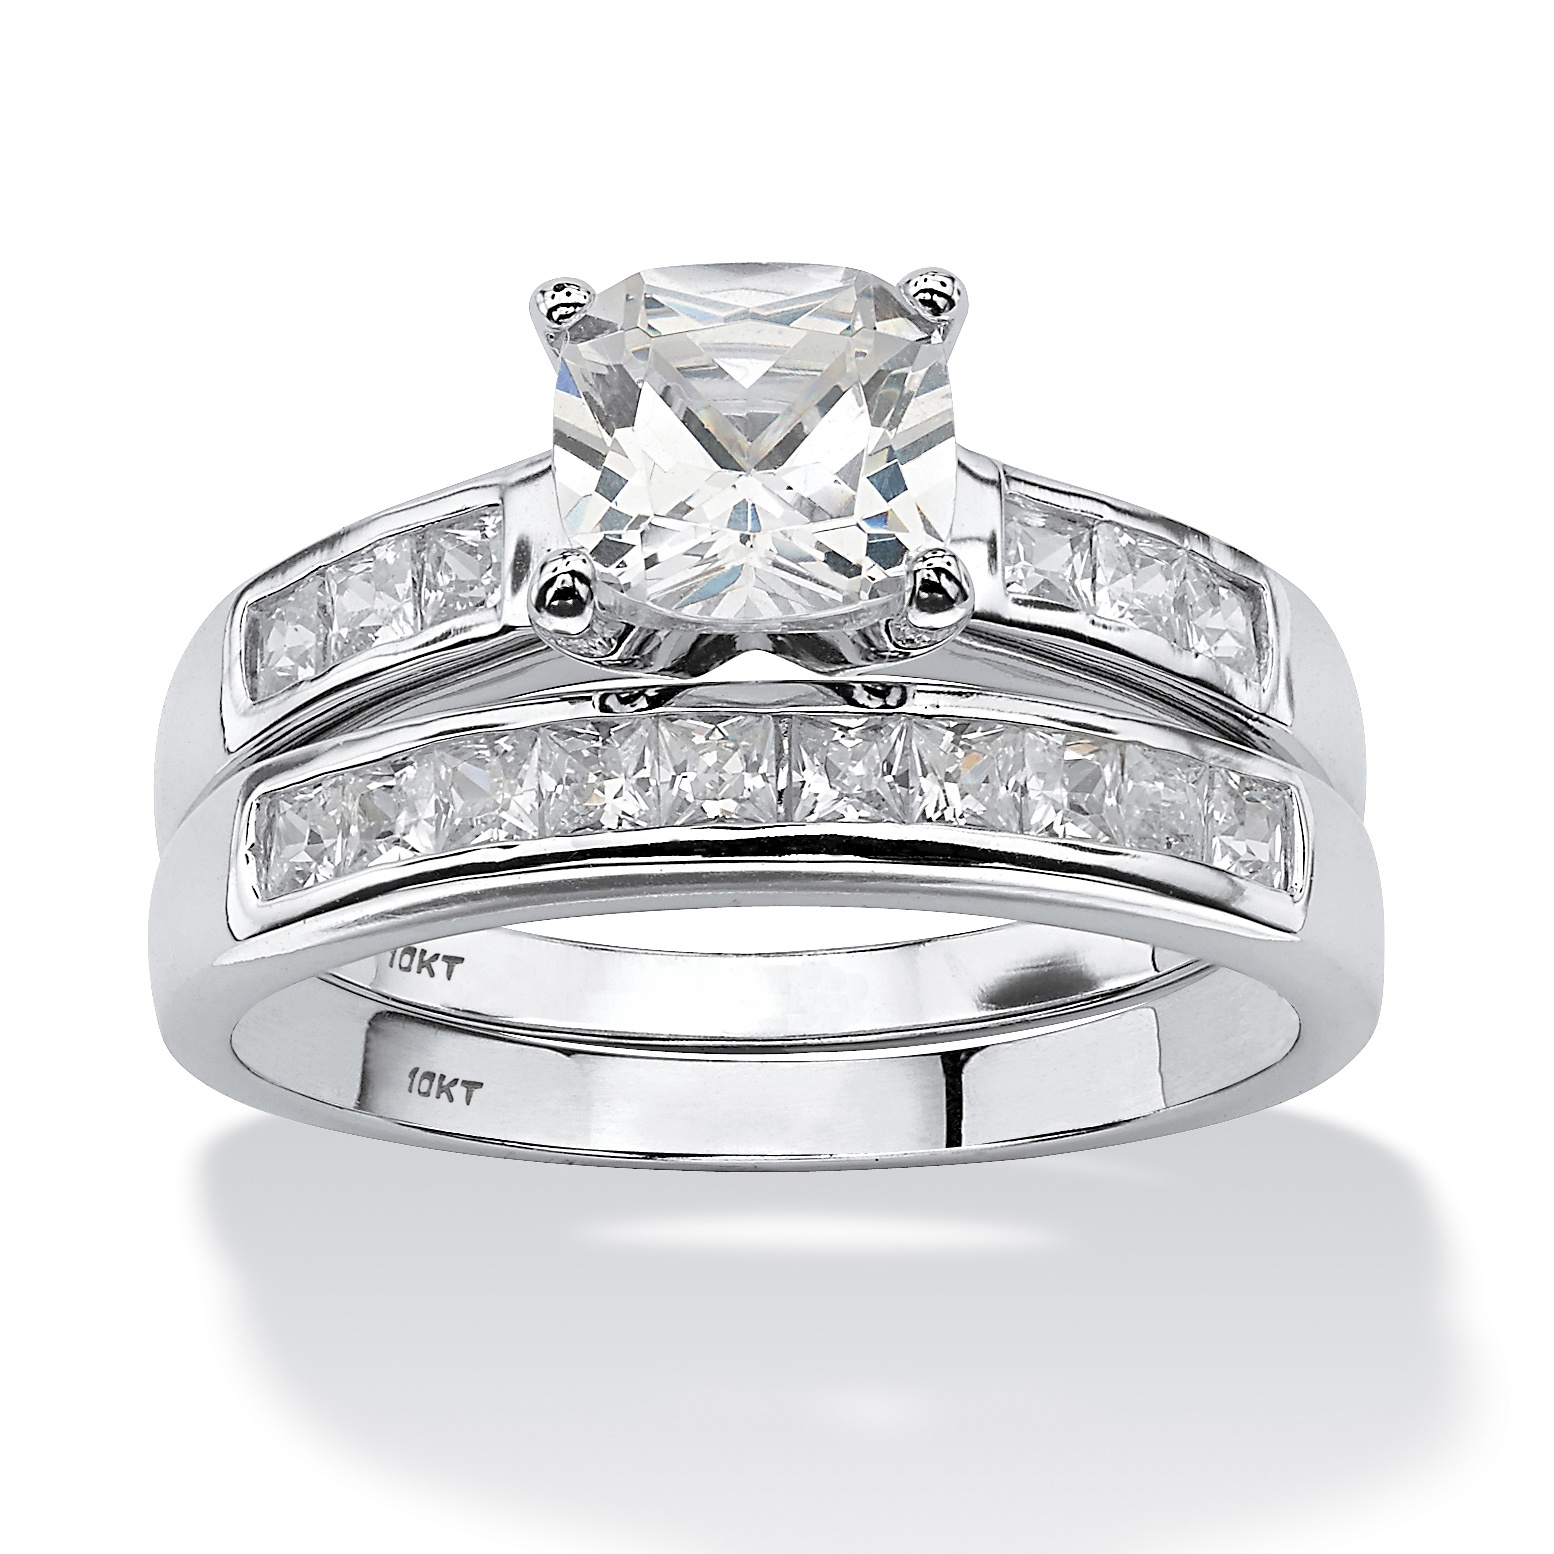 2 Piece 1 94 Tcw Cushion Cut Cubic Zirconia Bridal Ring Set In 10k White Gold At Palmbeach Jewelry